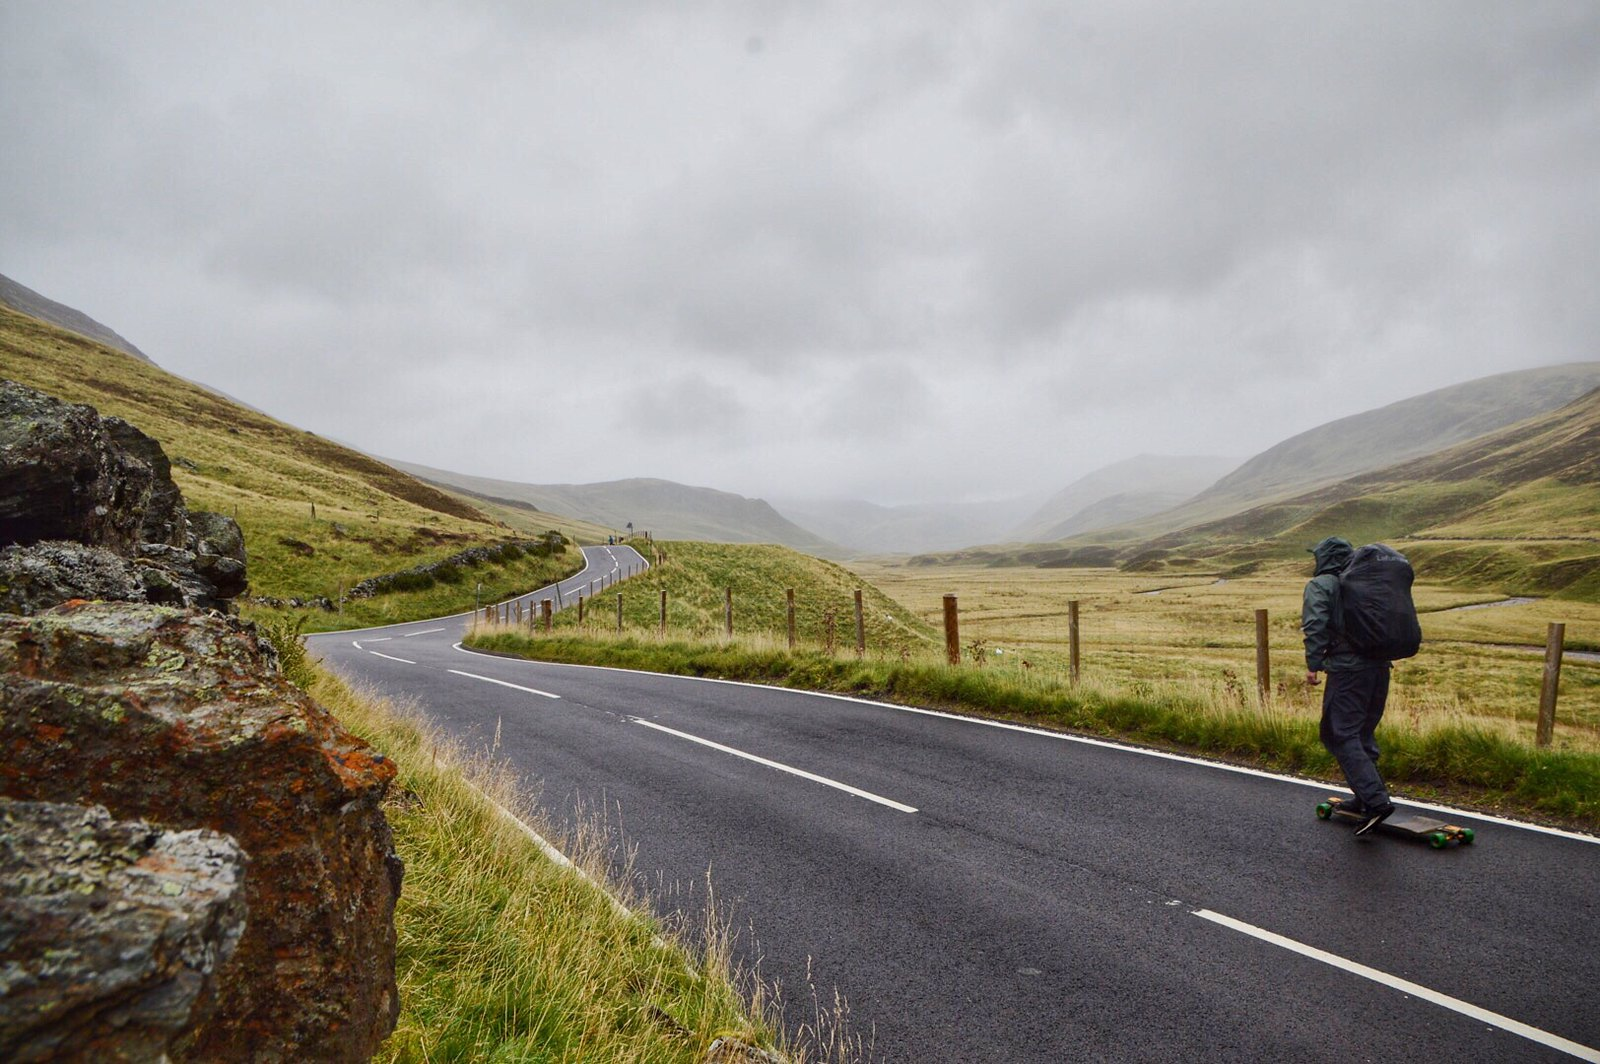 Road to Glenshee